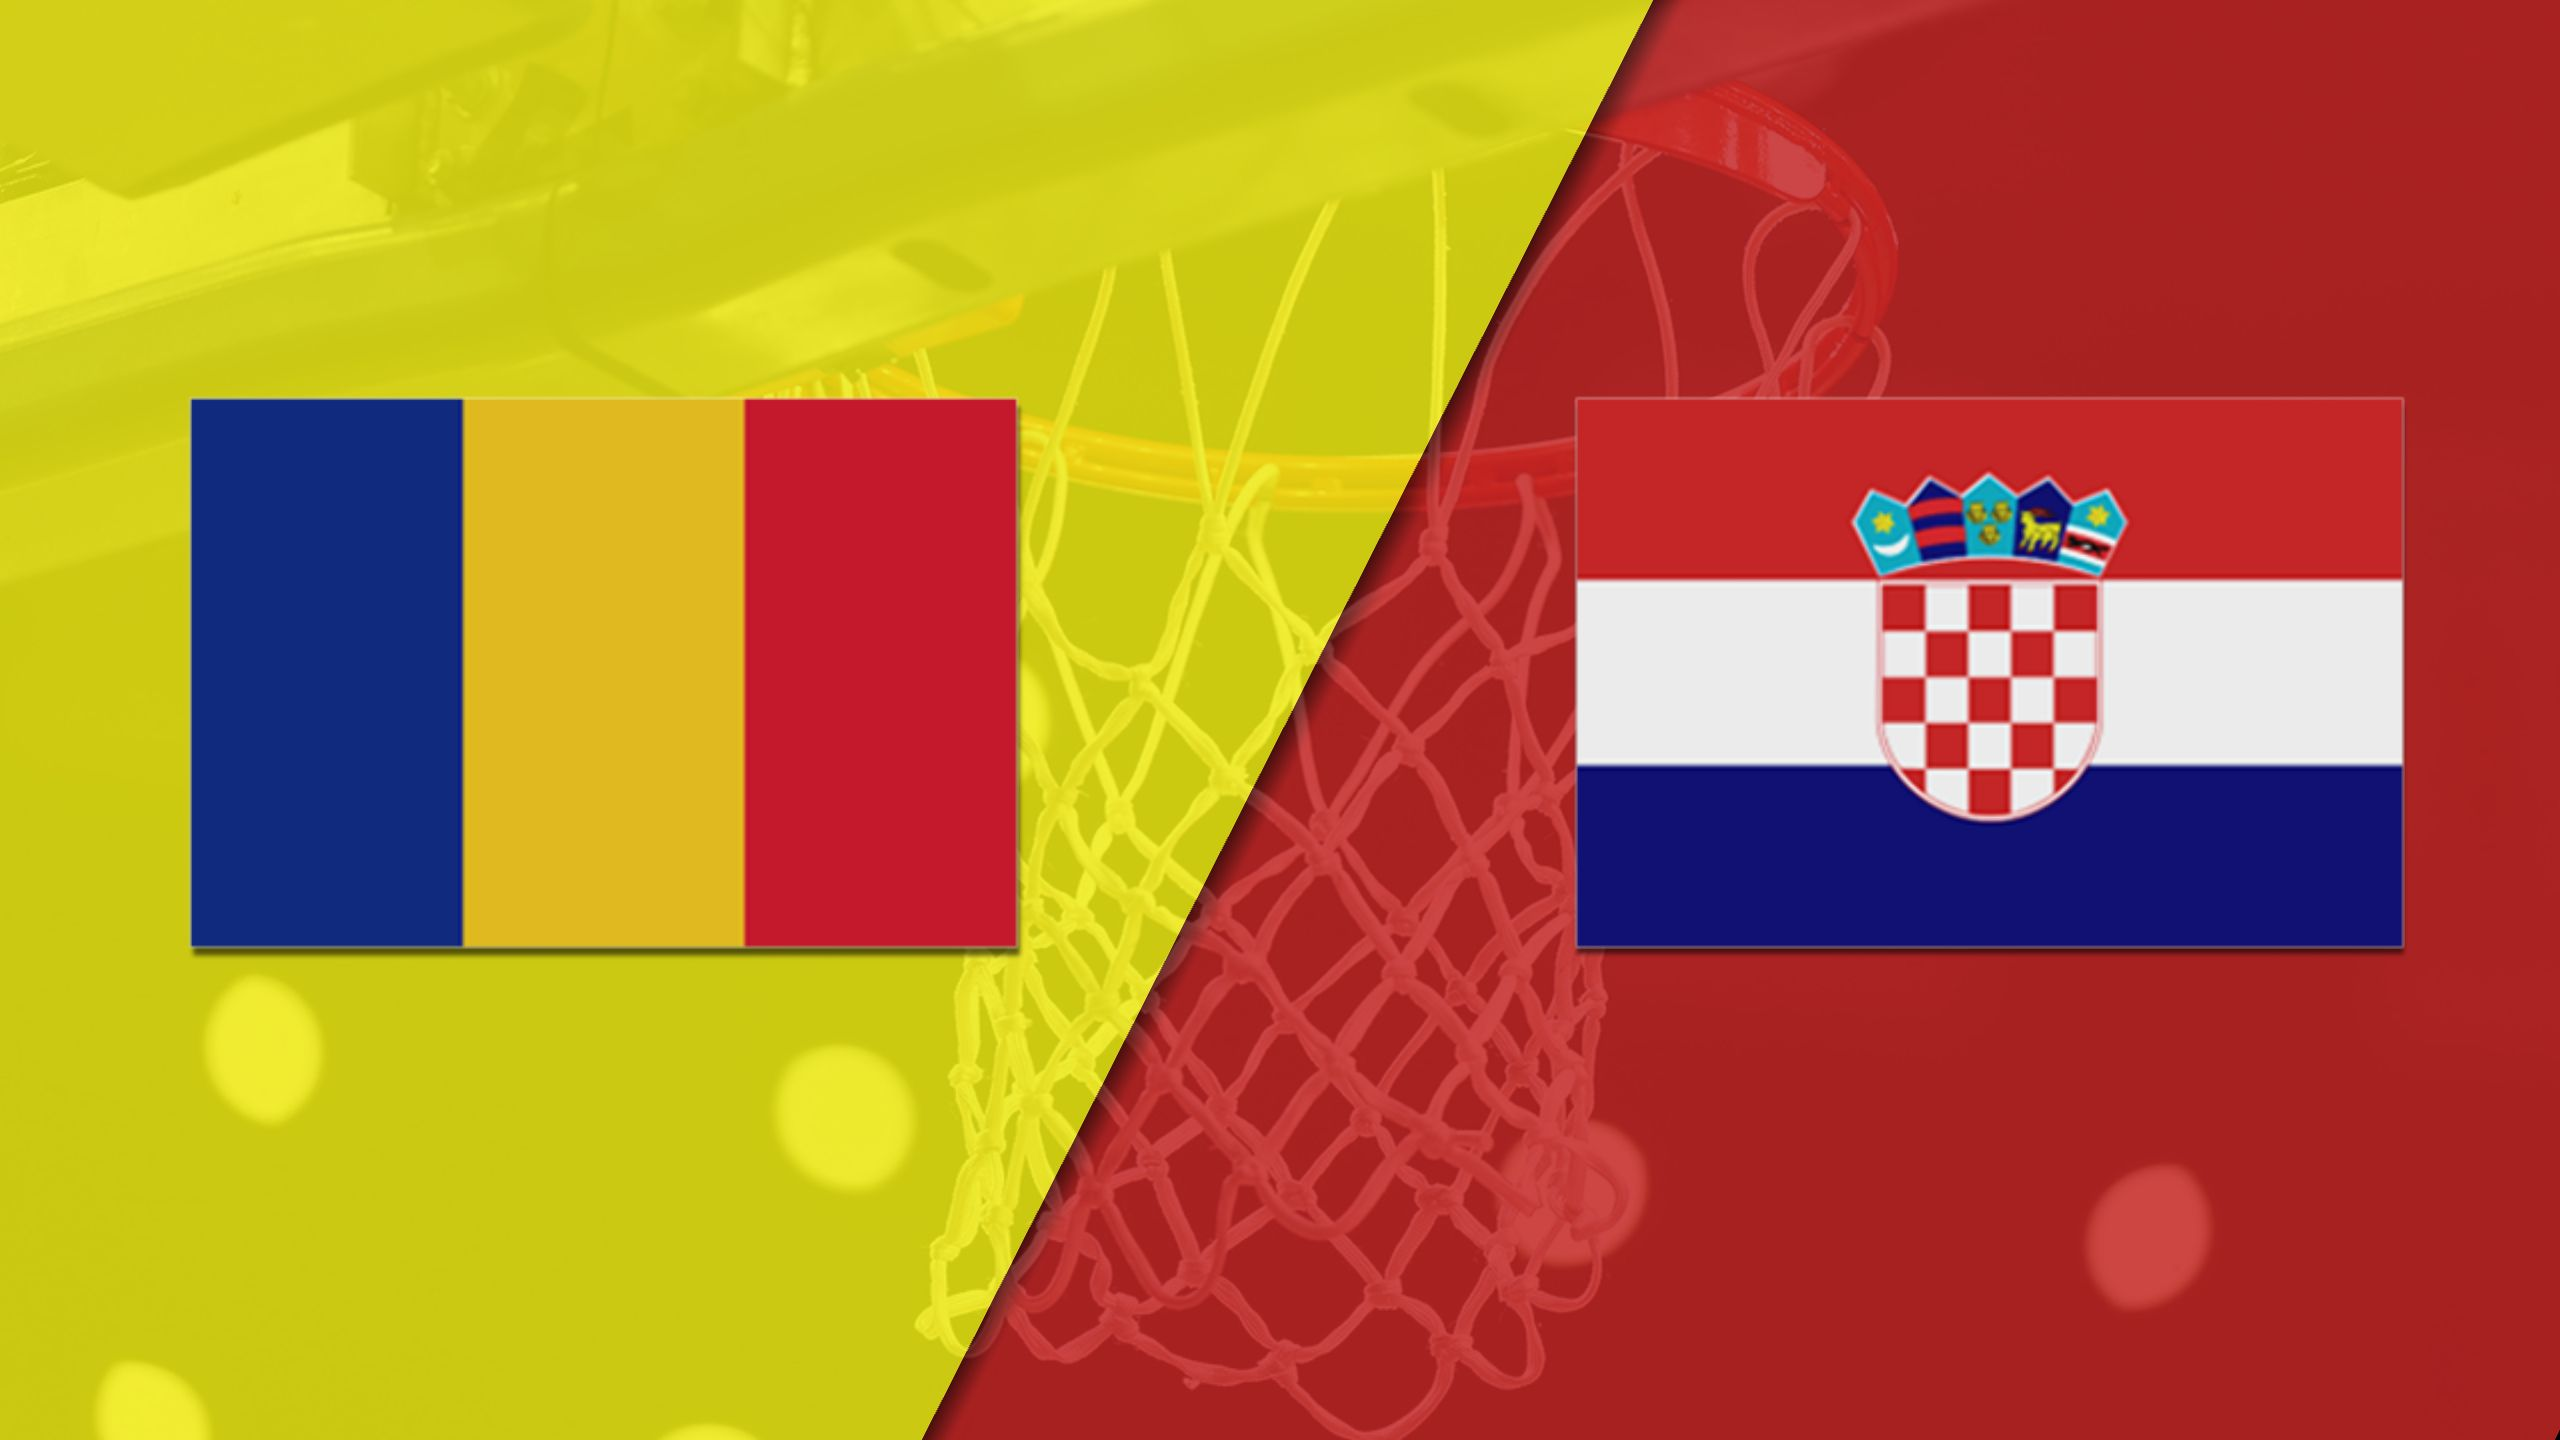 Romania vs. Croatia (FIBA World Cup 2019 Qualifier)